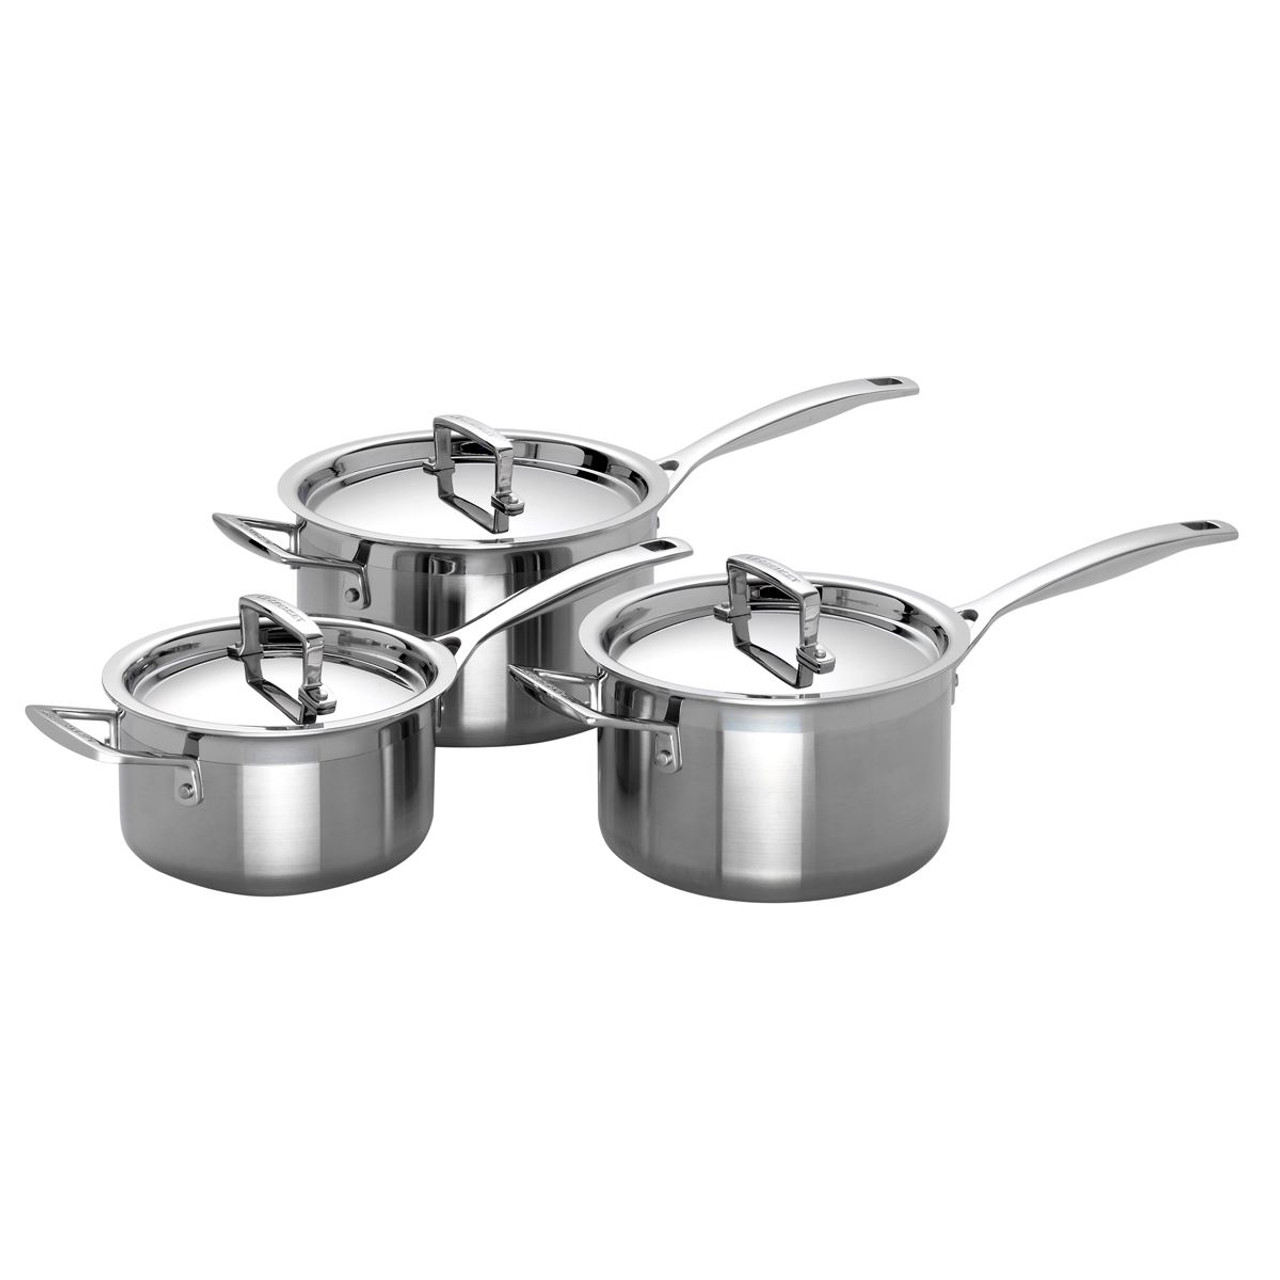 Le Creuset 3 Ply Stainless Steel Saucepan Set